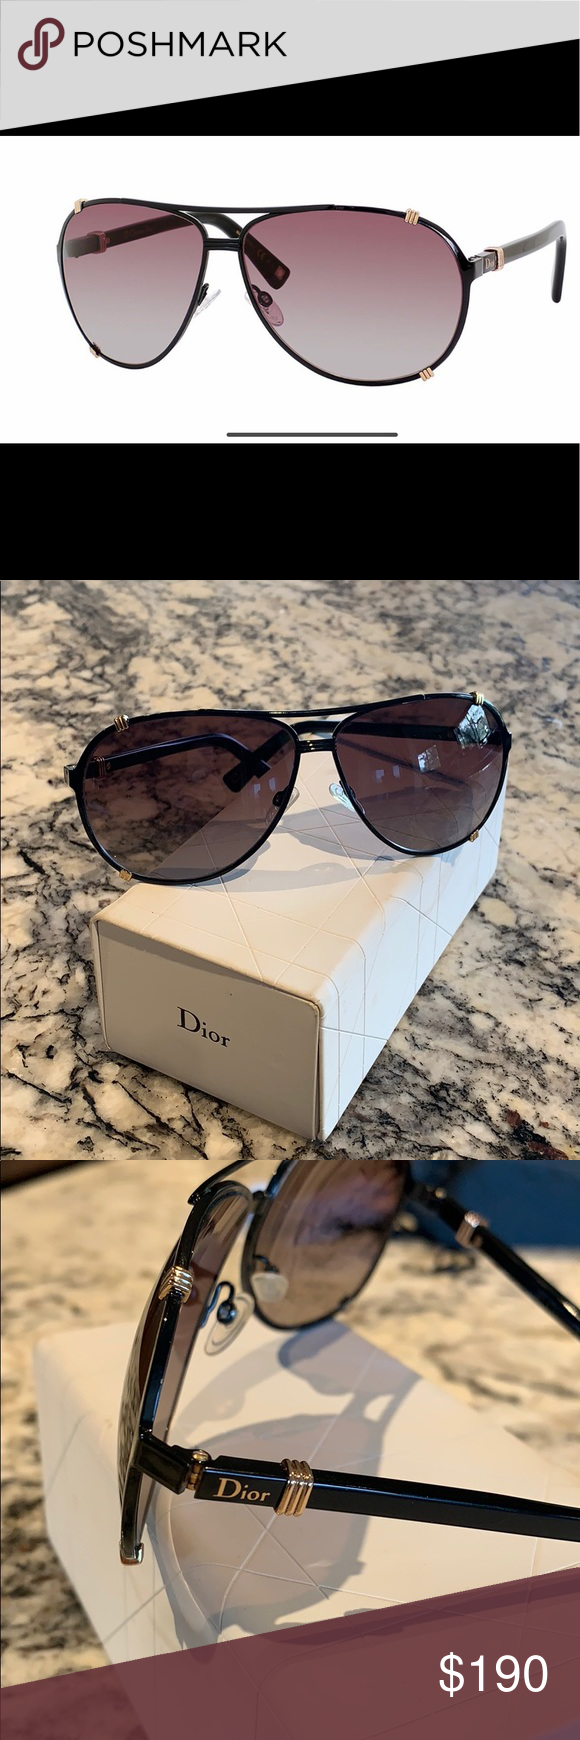 c67f047c77e0 Christian Dior Chicago 2 aviator sunglasses Beautiful lightly used  authentic Dior black and gold sunglasses Dior Accessories Sunglasses